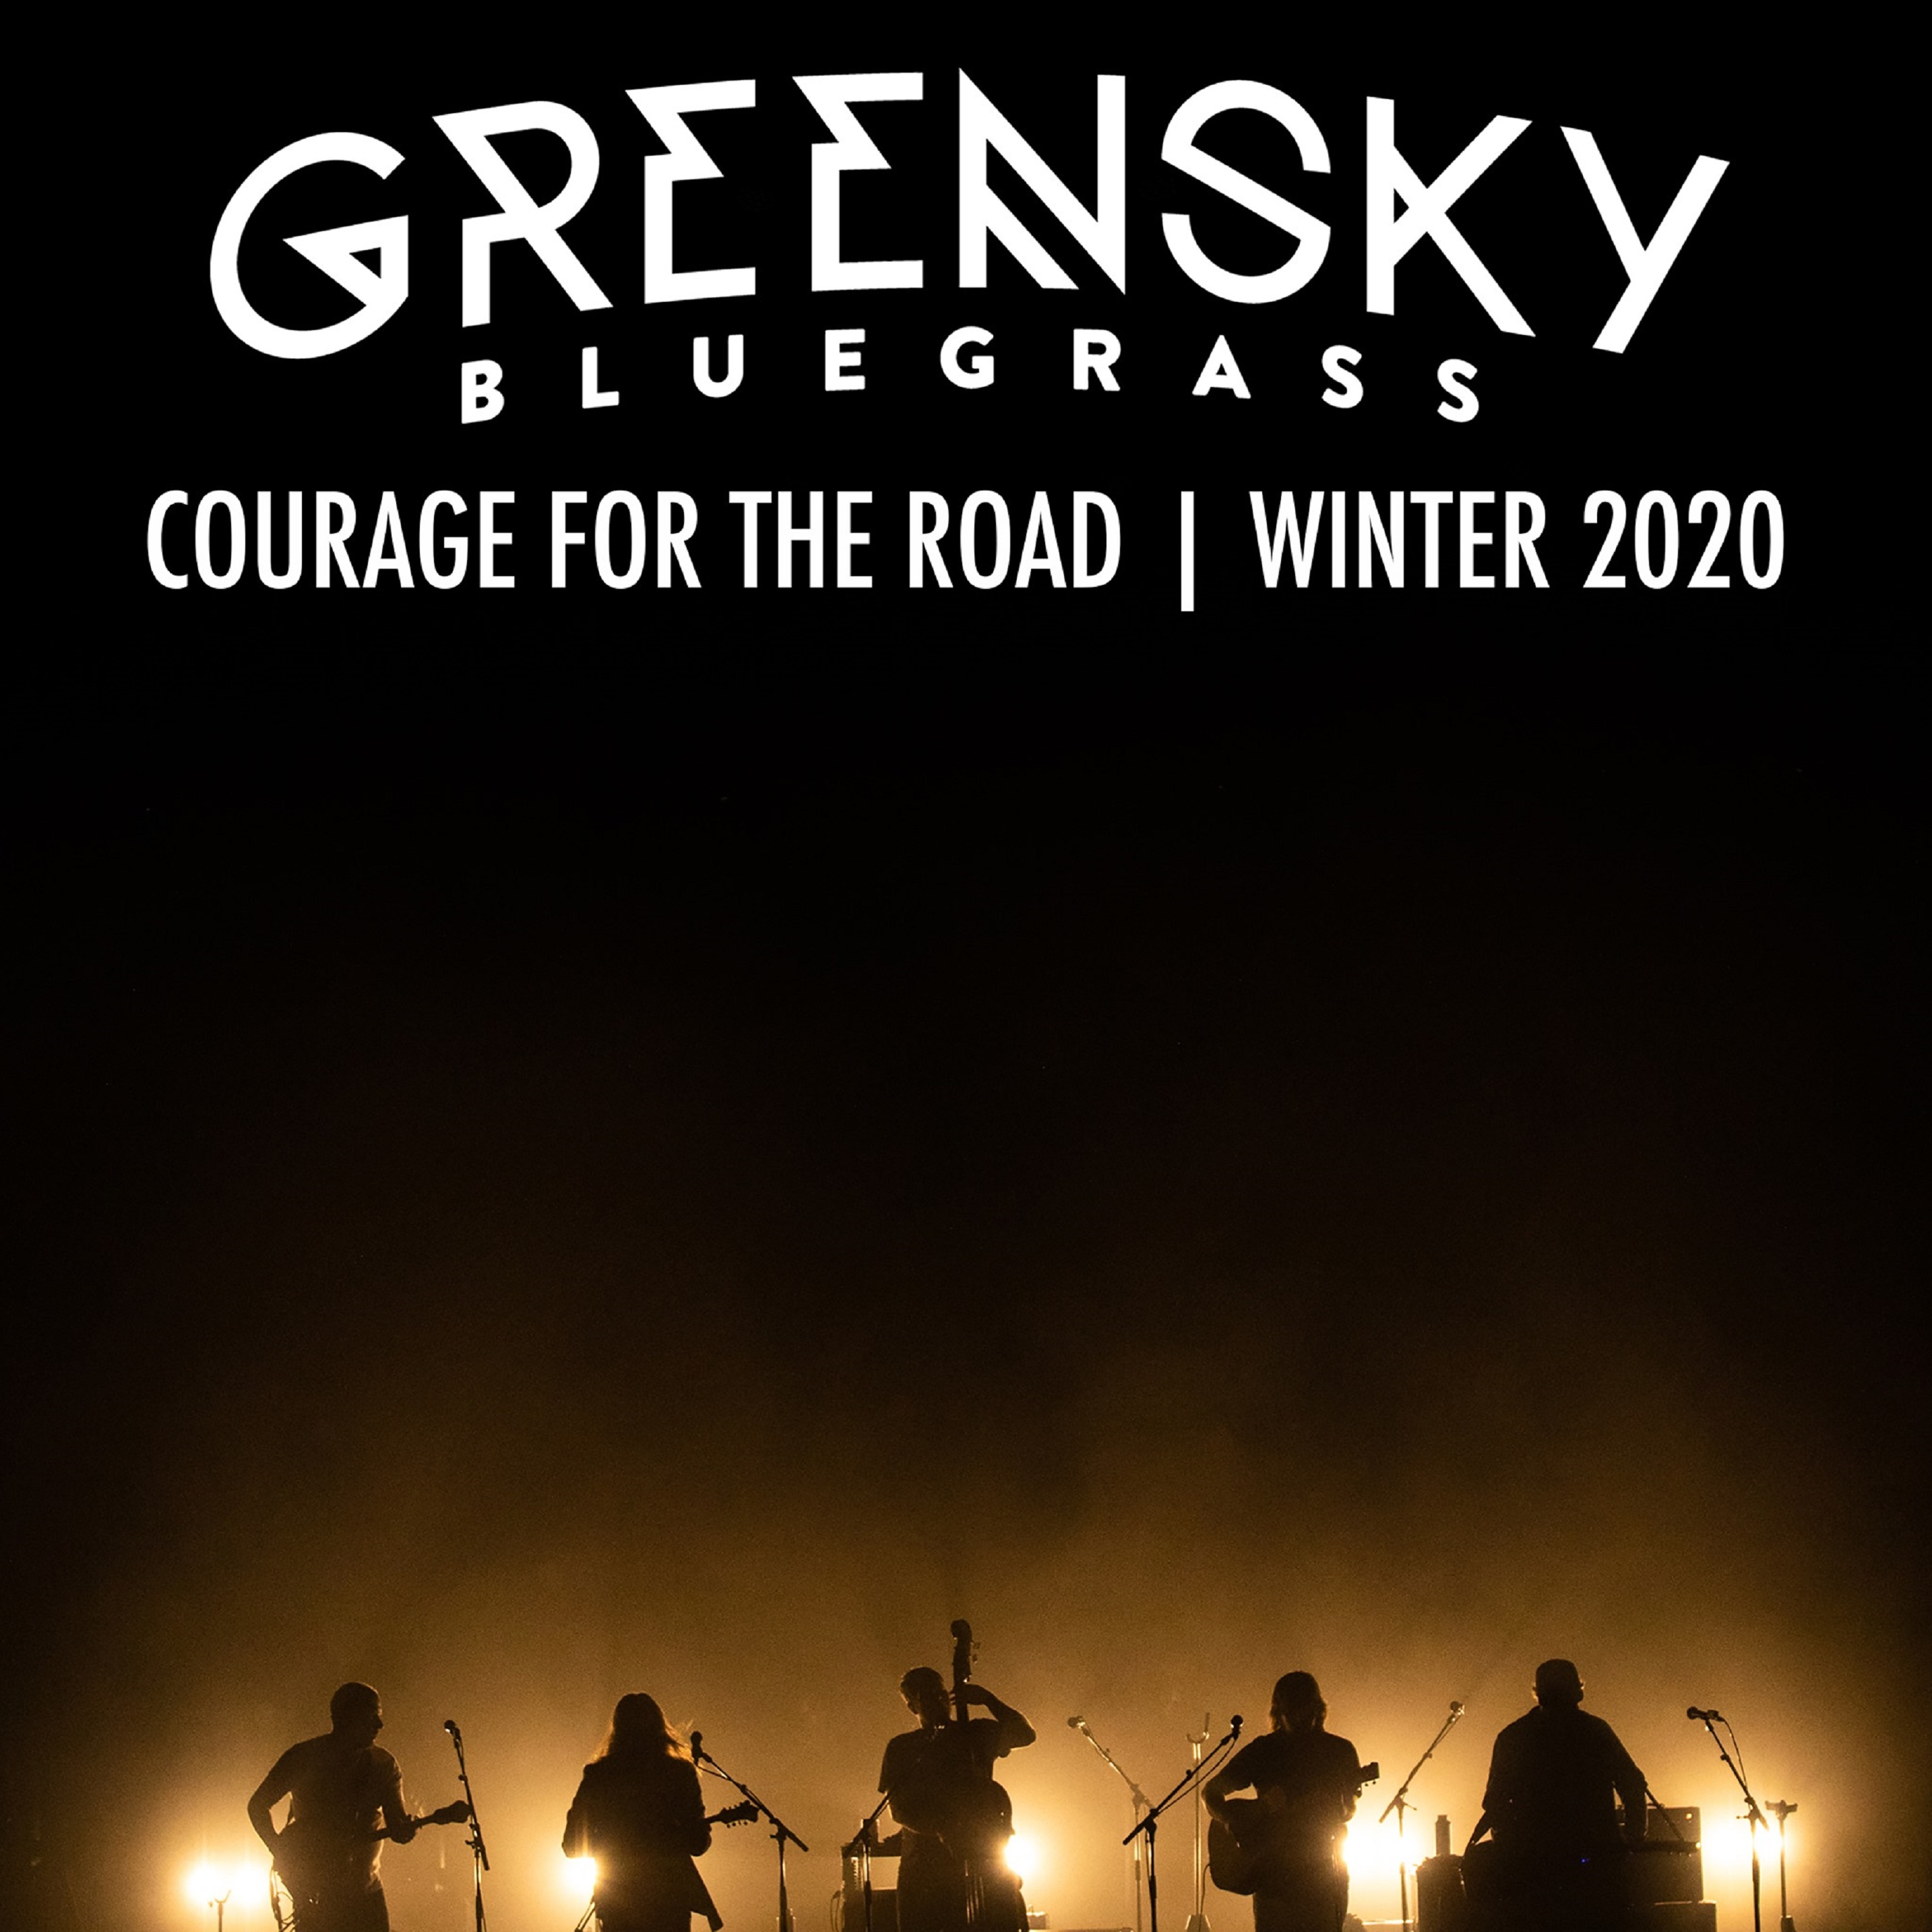 Greensky Bluegrass Offers New Live Release Courage For The Road: Winter 2020